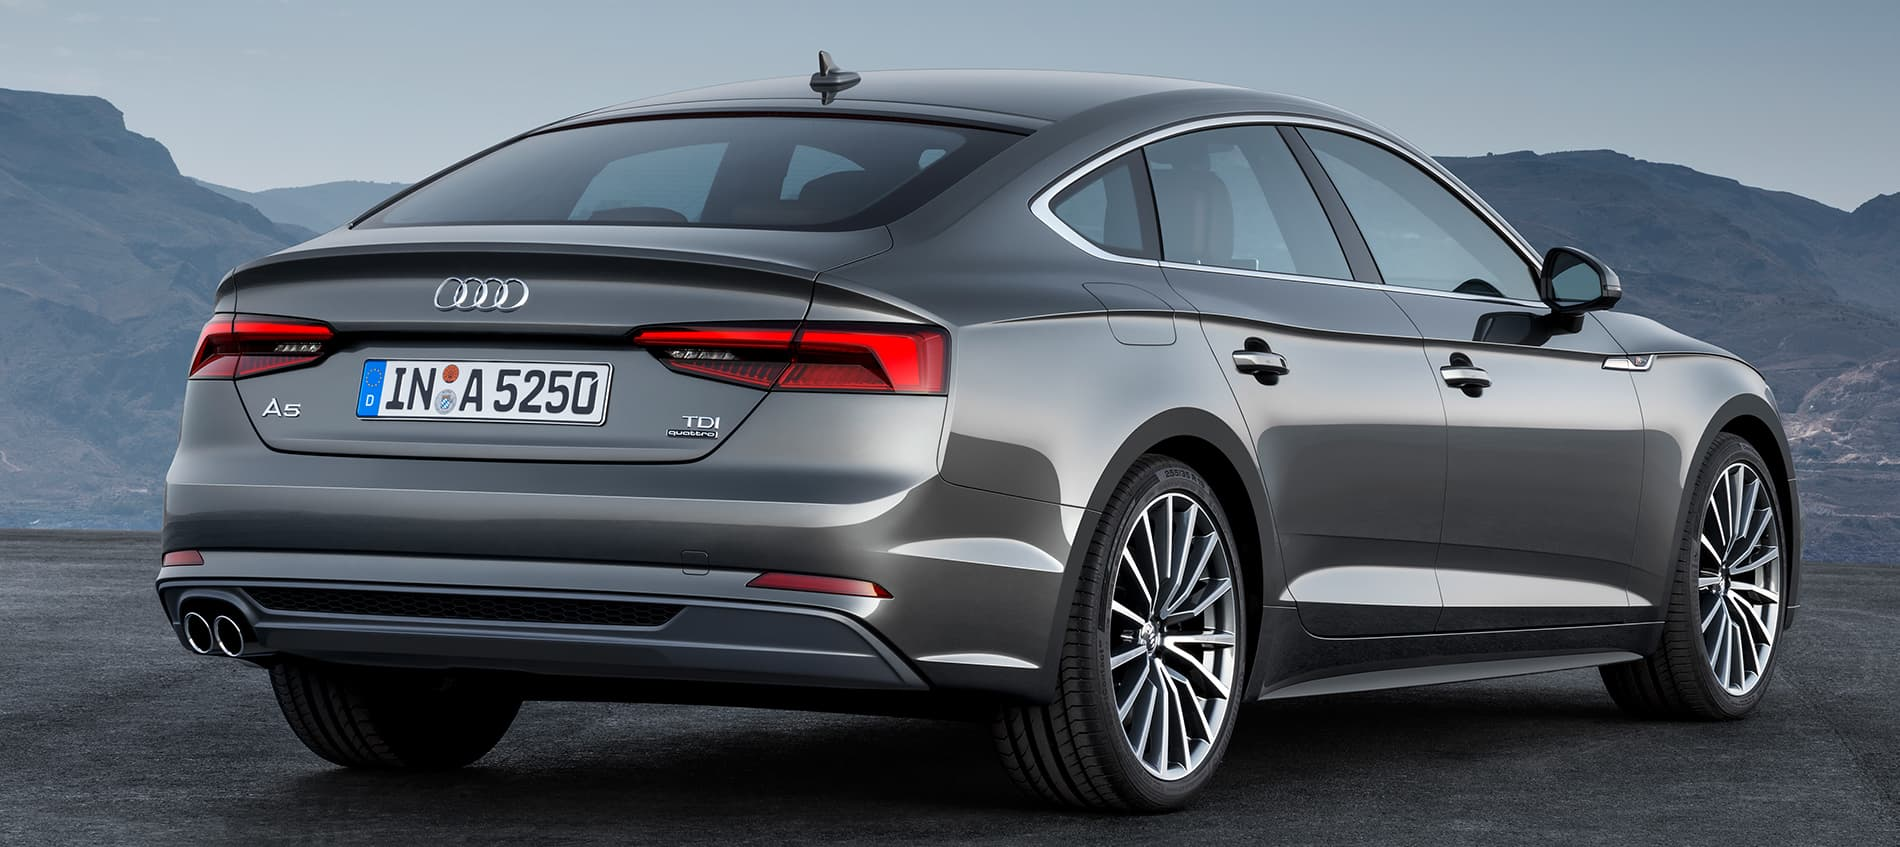 Is The New Audi A5 Worth Rs 7 25 Million Pricetag